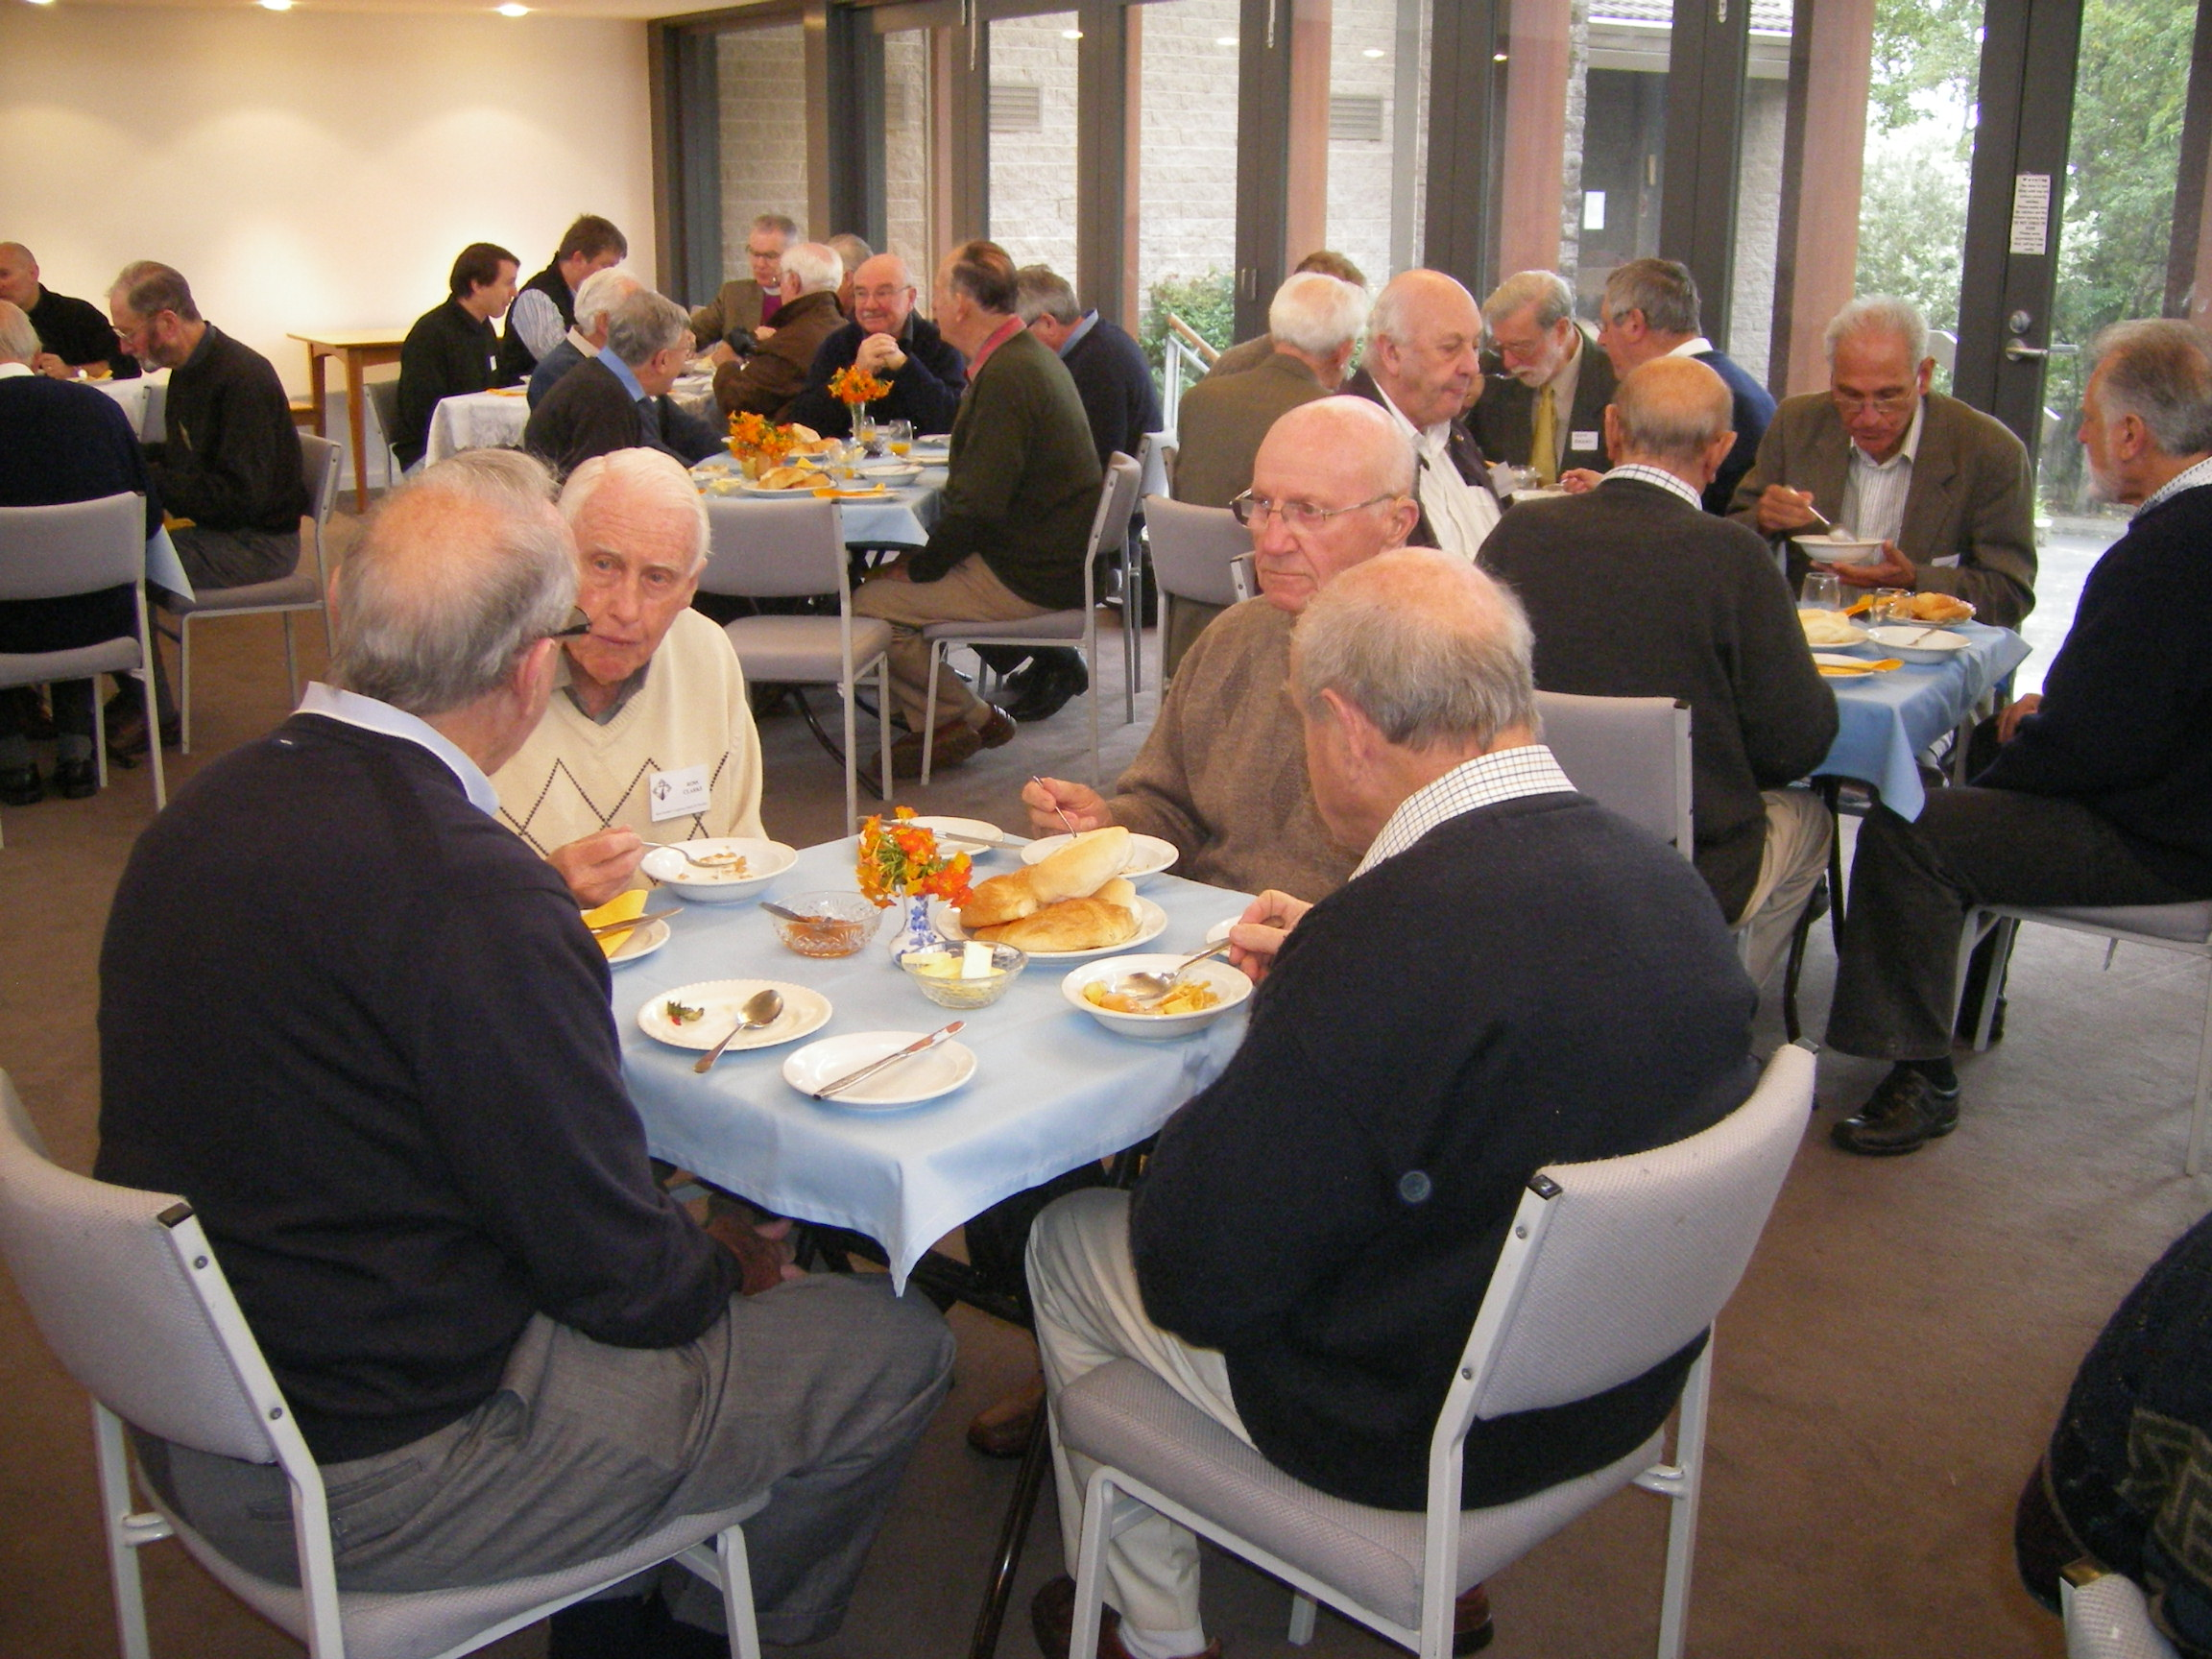 Some of the men of the parish enjoy breakfast together